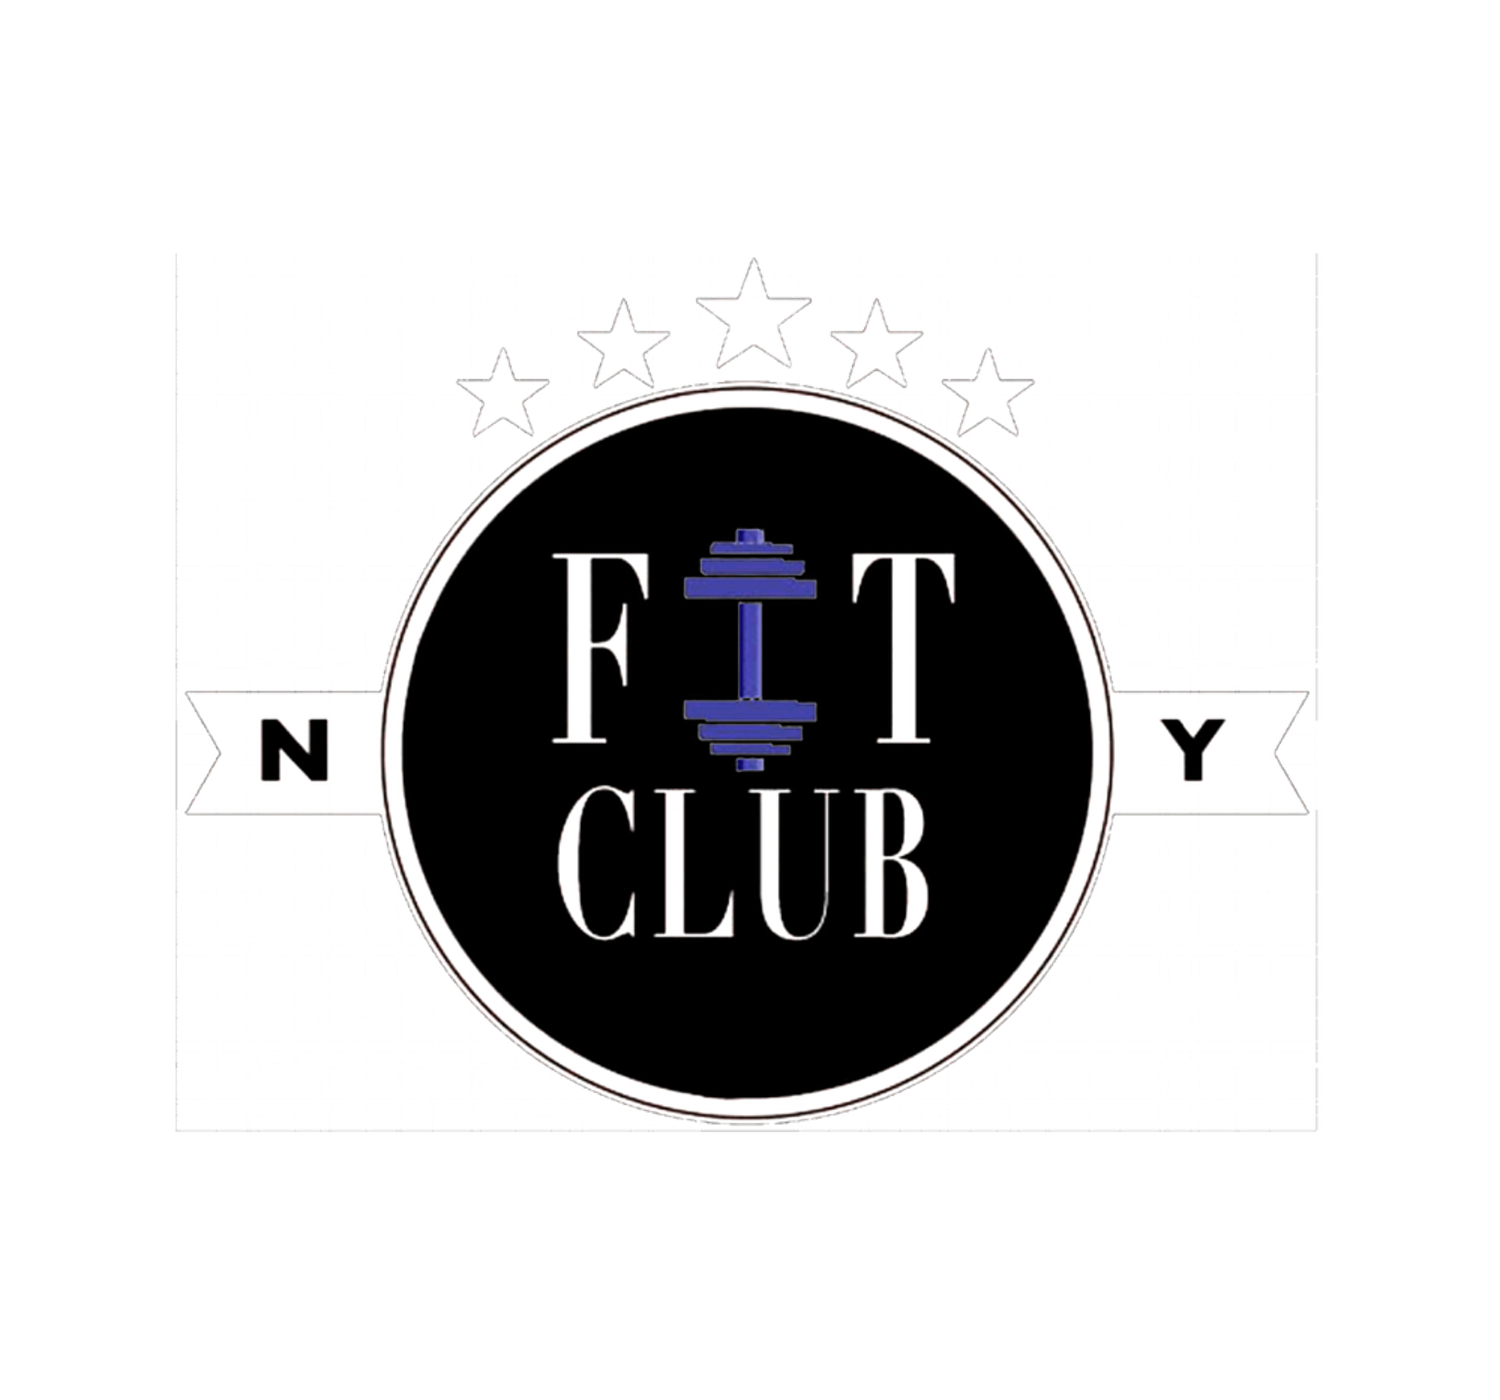 FIT CLUB NY